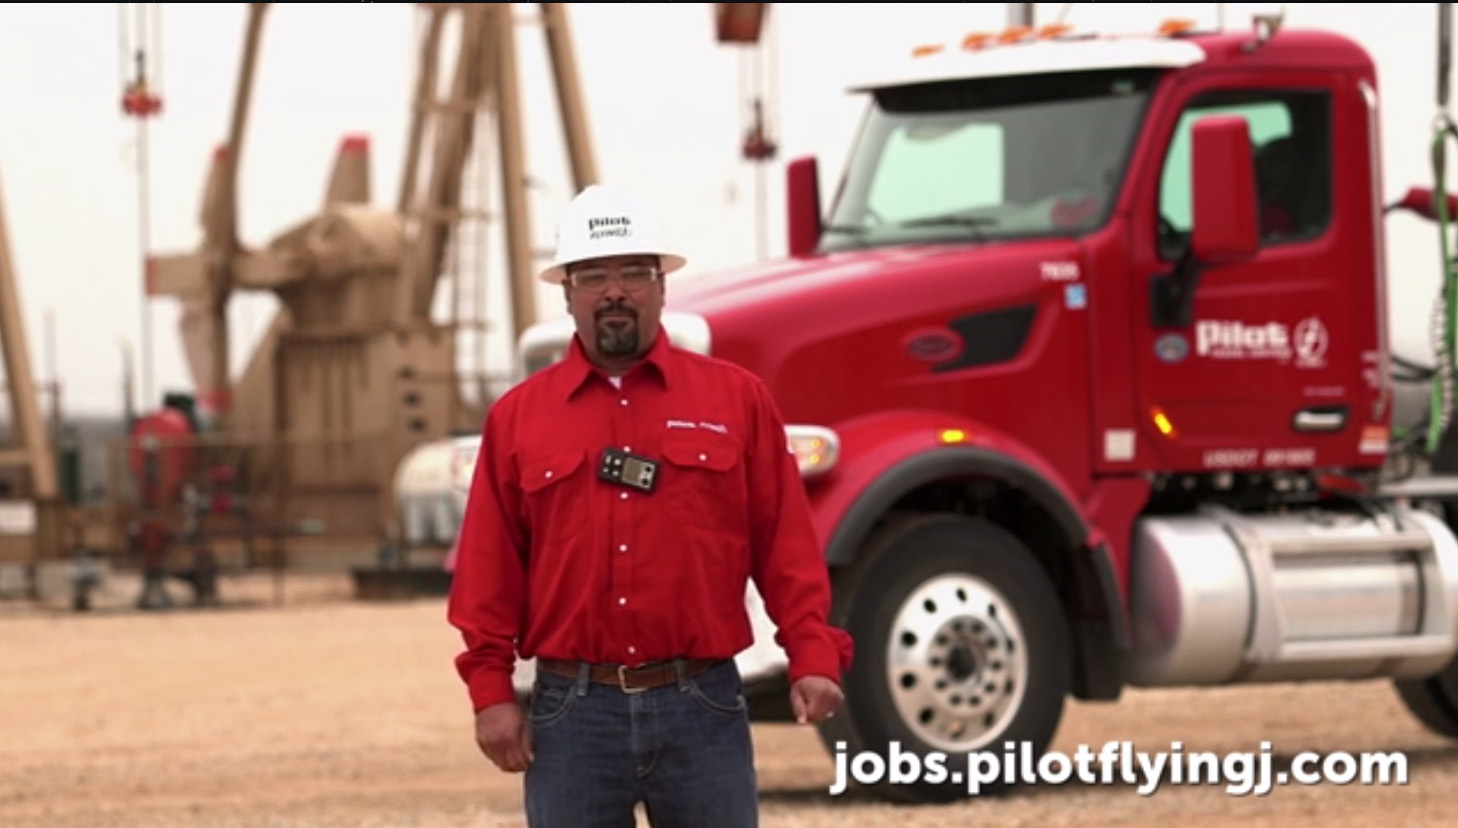 Whether you're interested in Fuel Transport, DEF, or Crude Oil transport, you'll be home more often and be proud of the work you do. Join a stable company that provides great benefits!